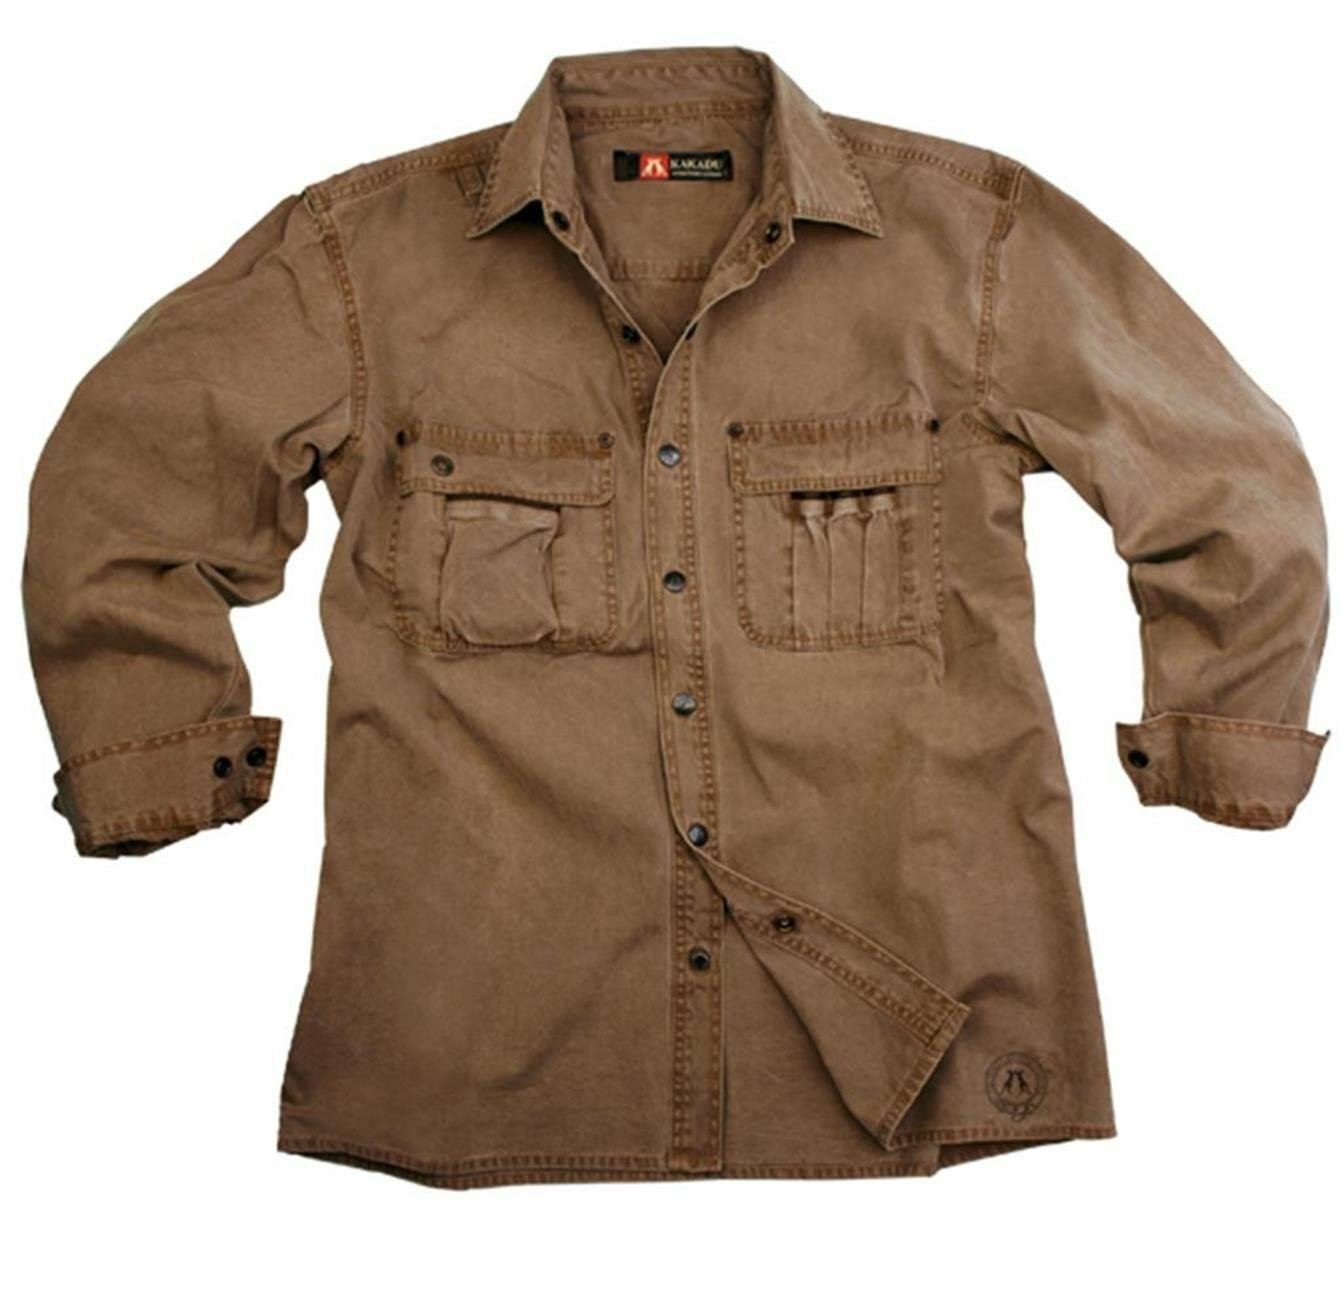 Australian Style Worker Outdoor Men's Shirt Cable from Robust Cotton